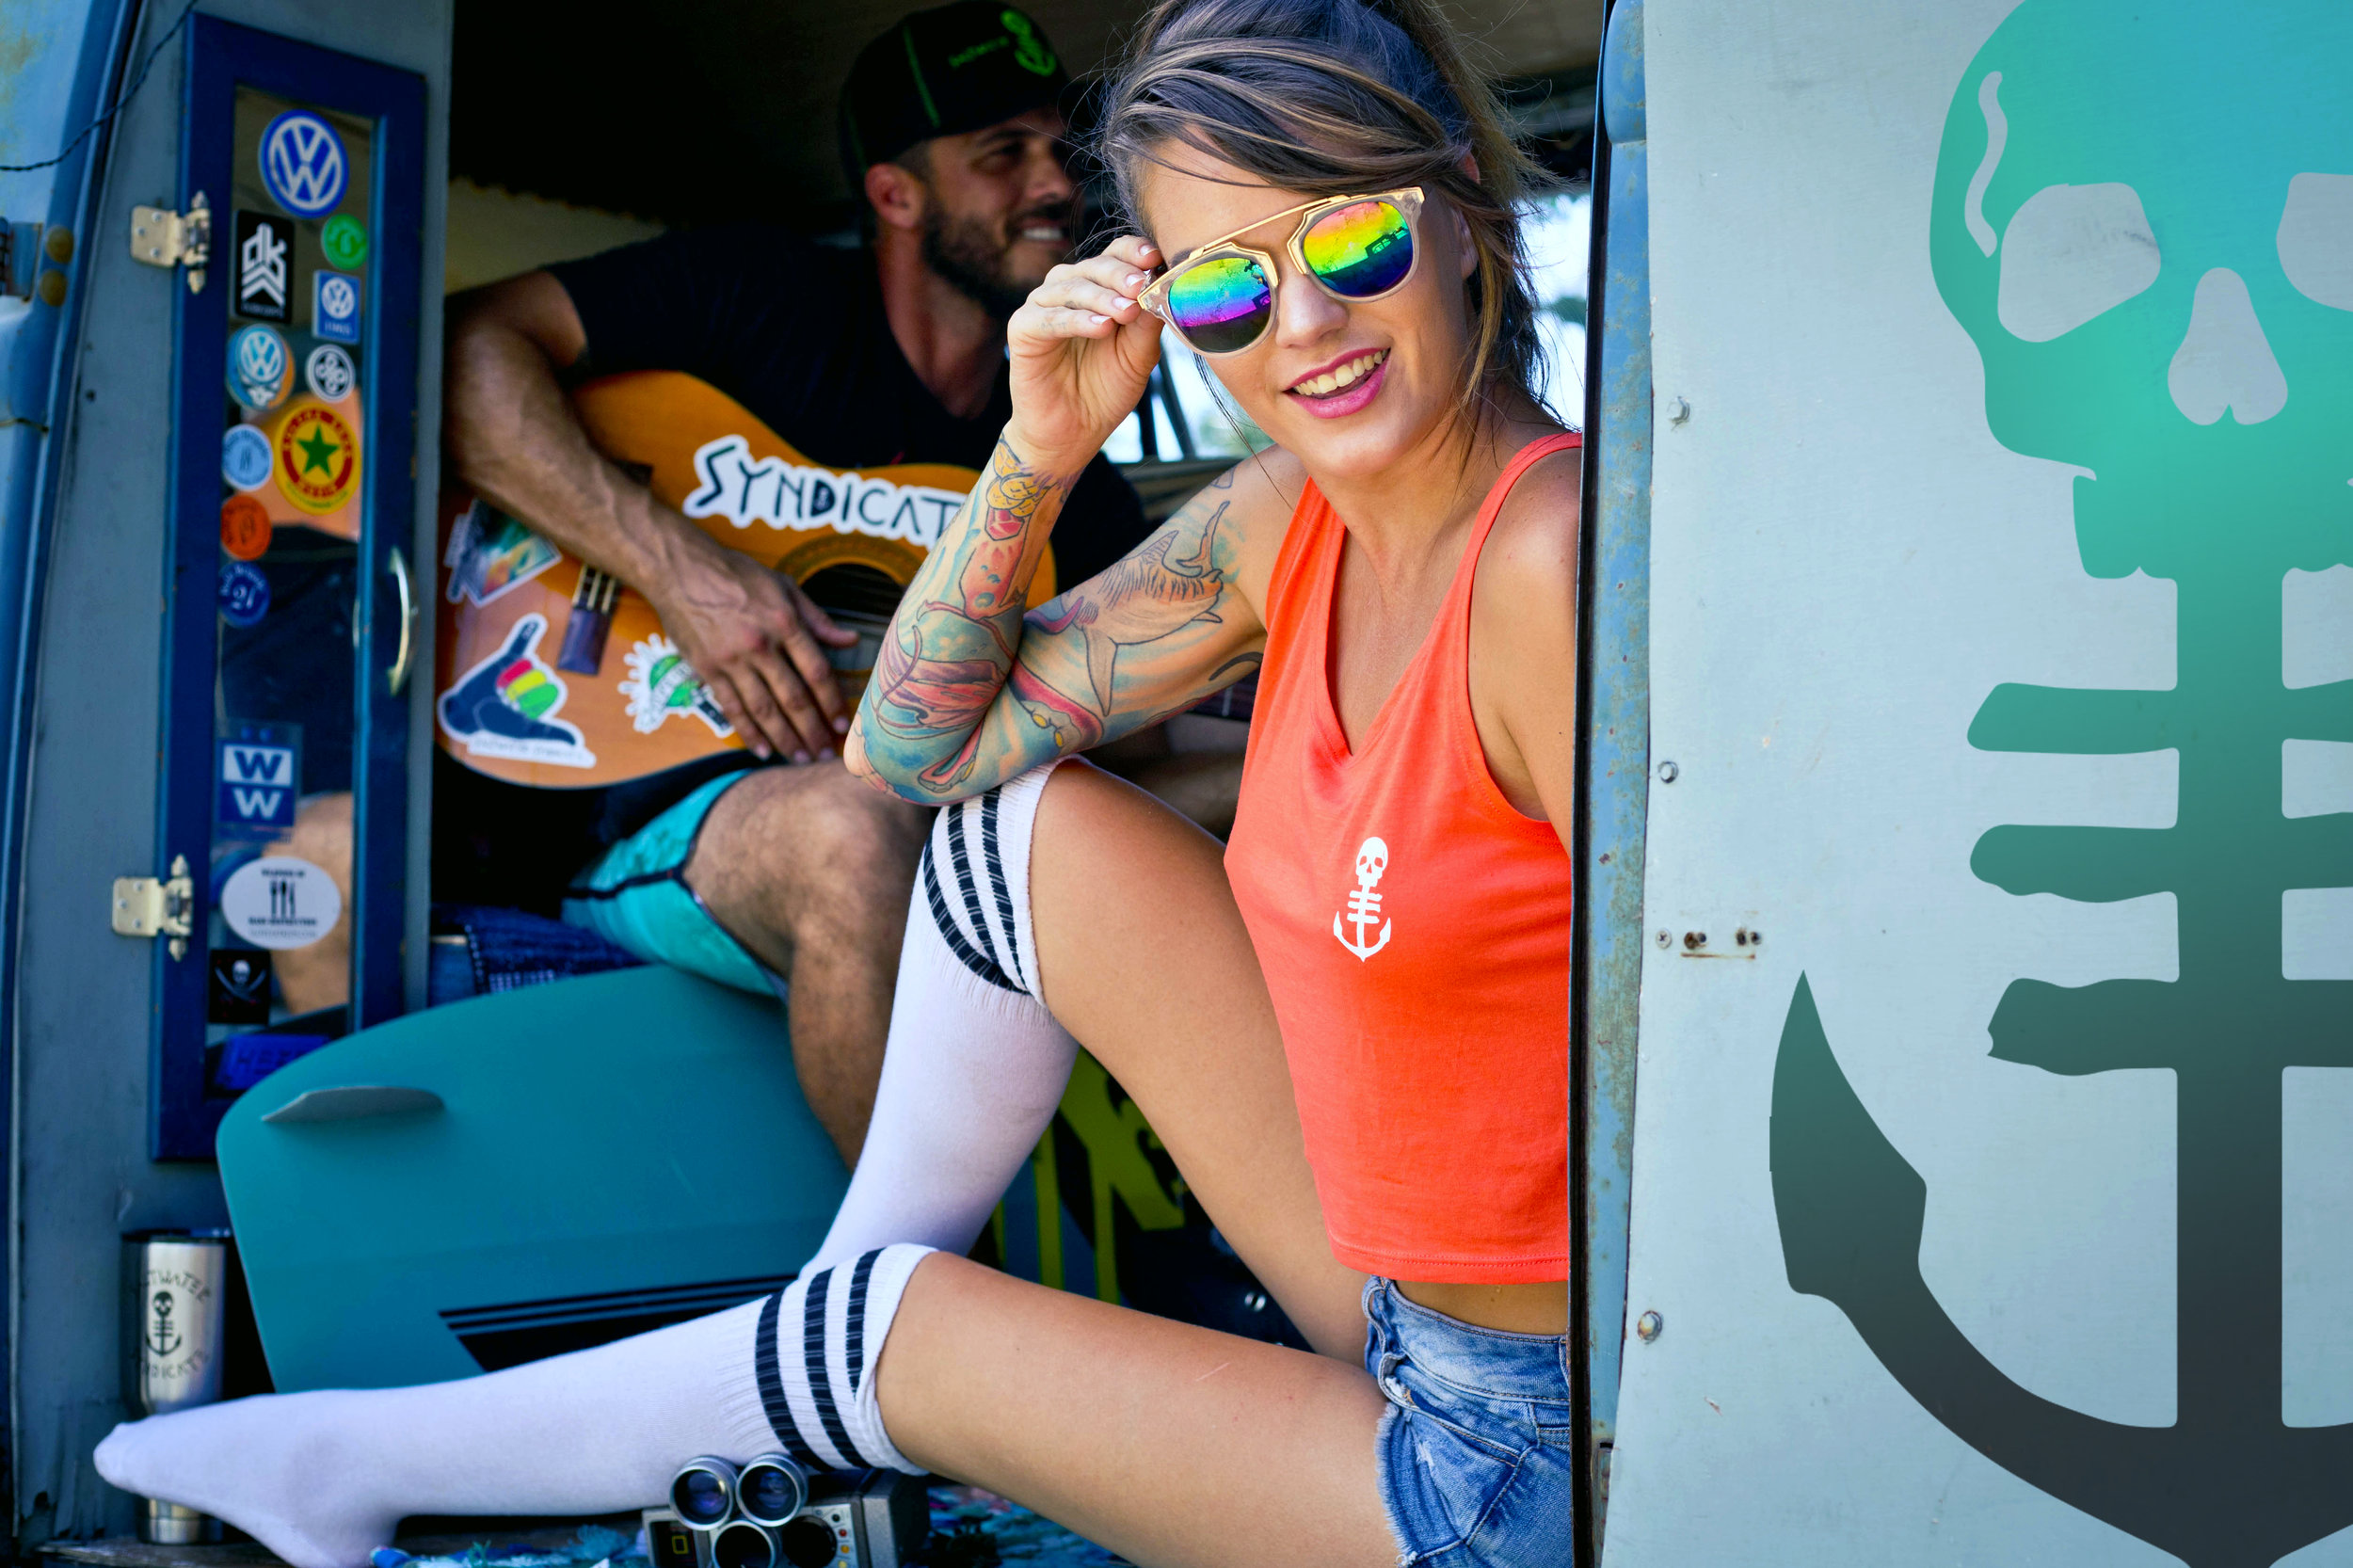 saltwater-syndicate-vw-bus.jpg